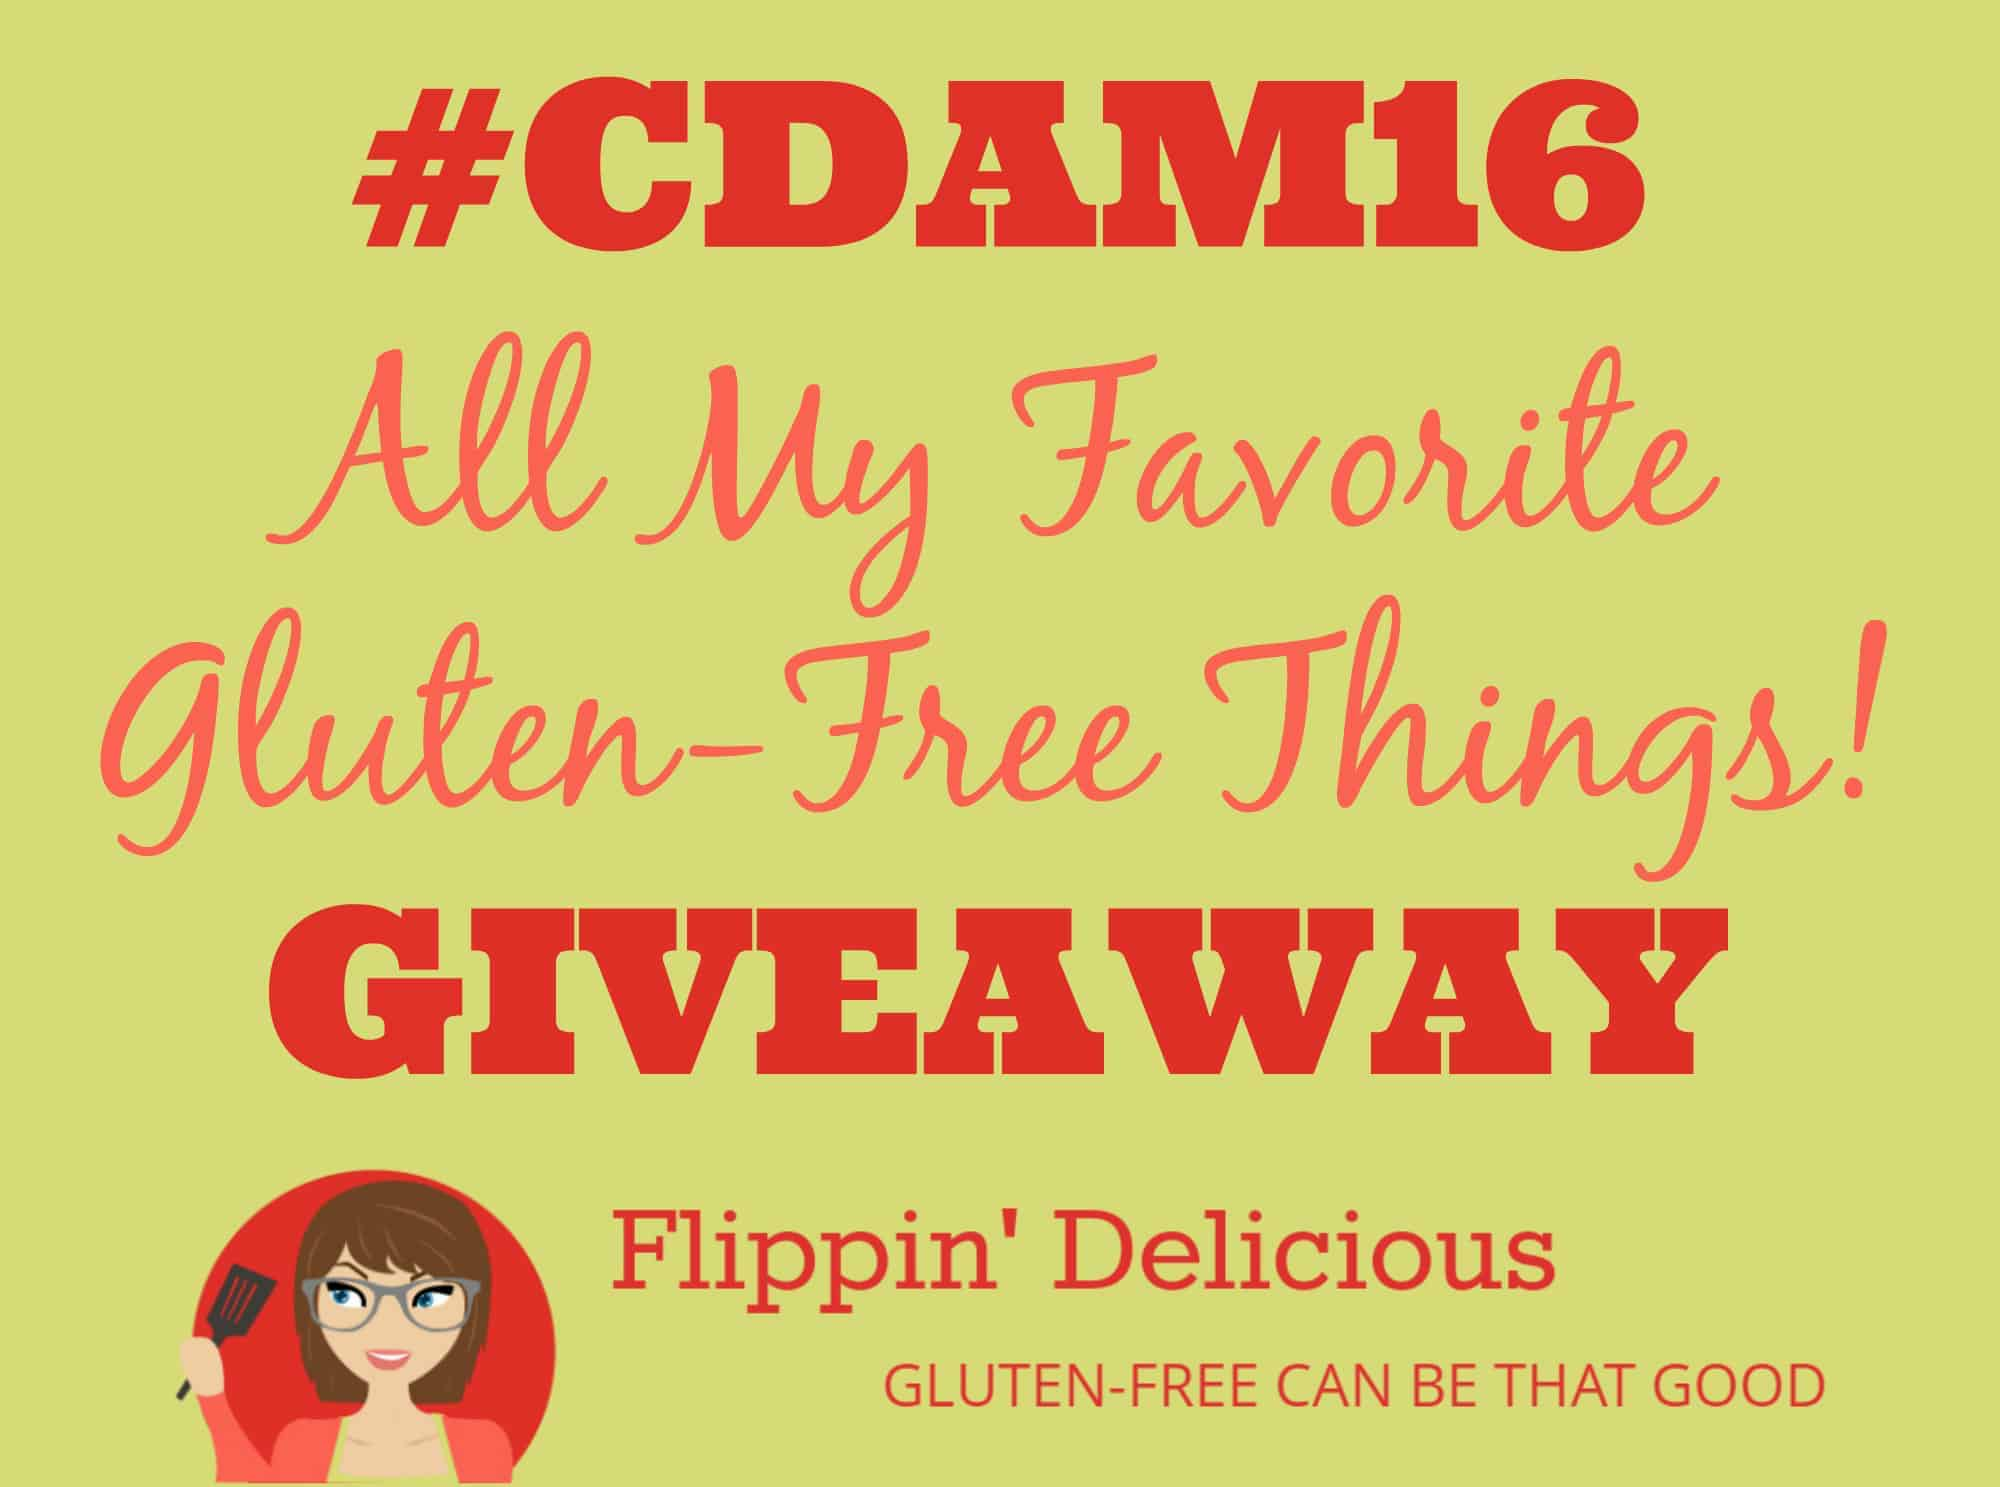 Don't miss #CDAM16 All My Favorite Gluten-Free Things Giveaway on Flippin' Delicious. 11 winners!